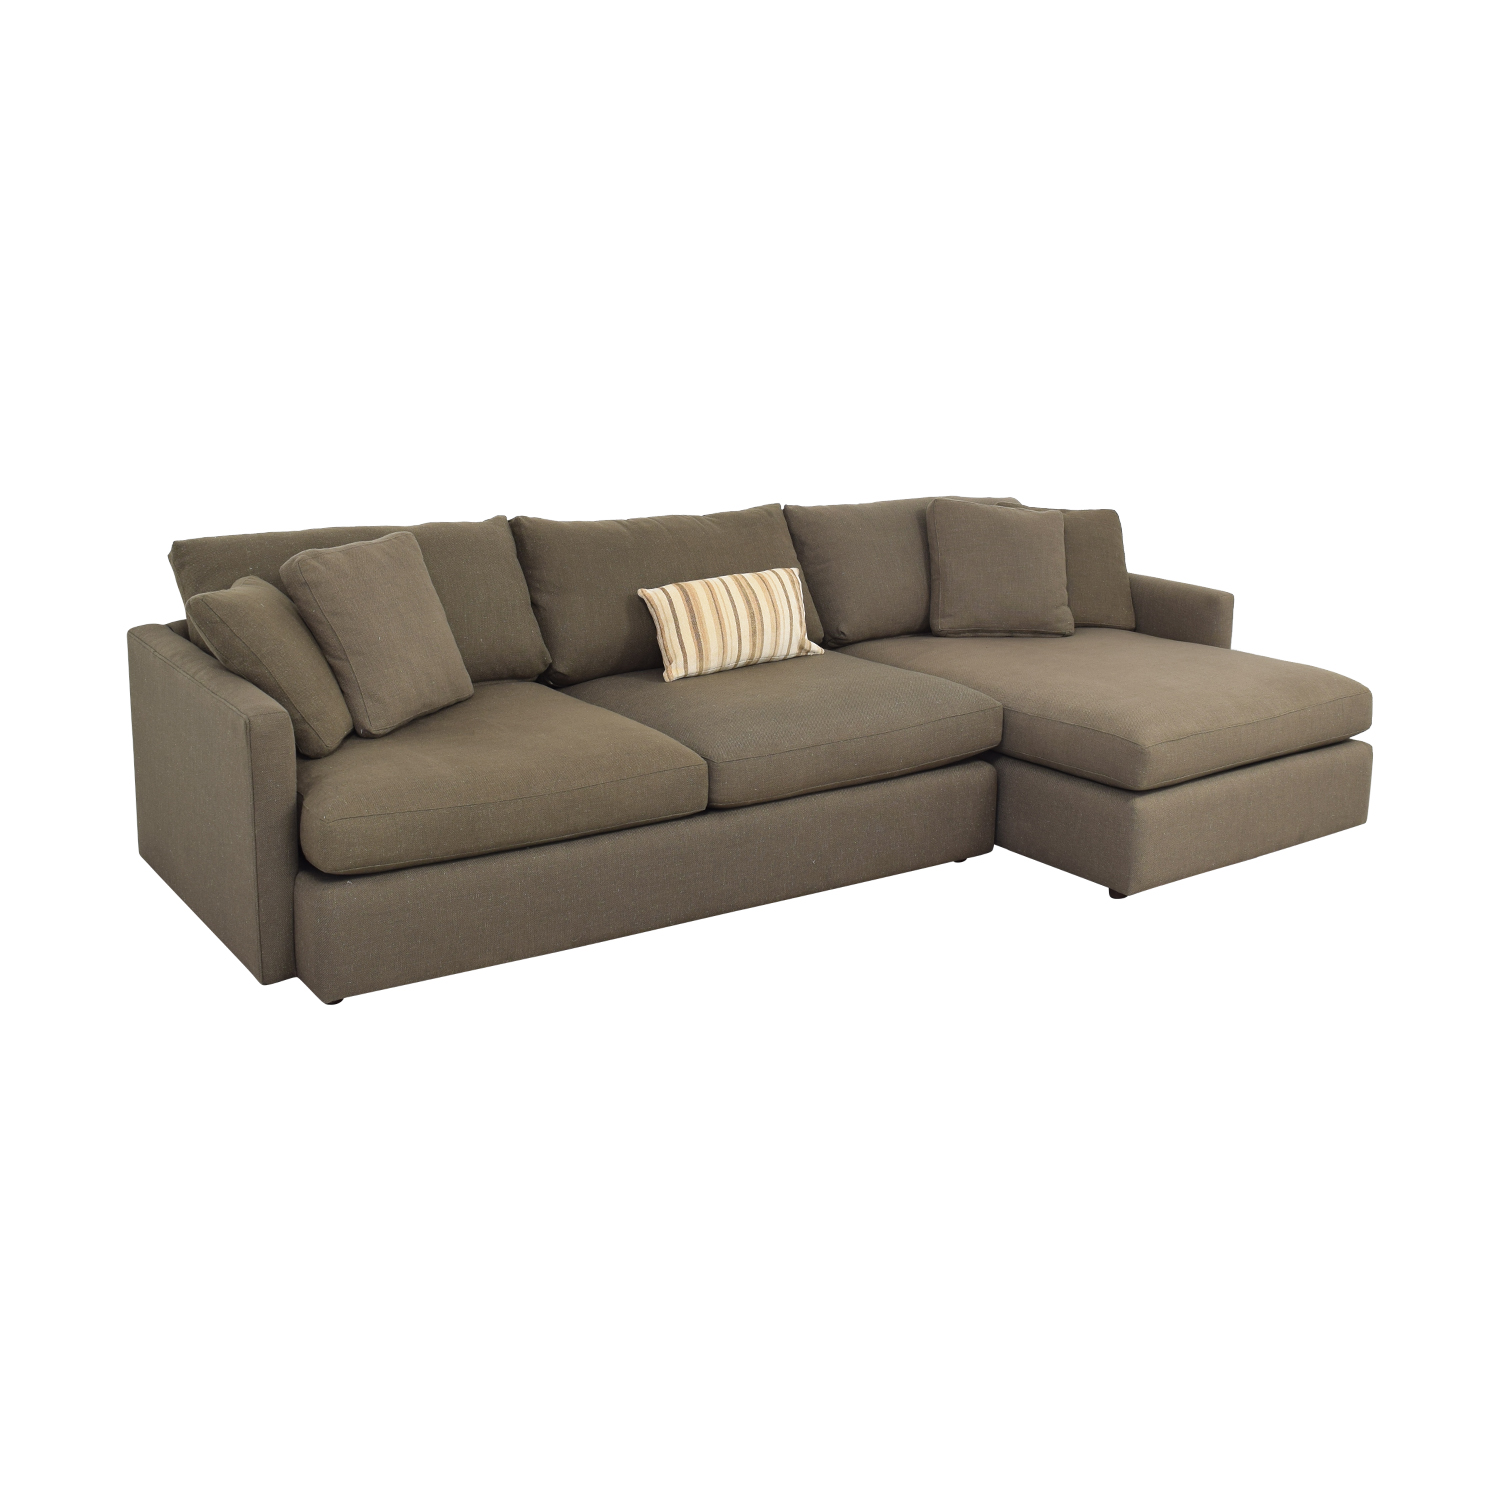 buy Crate & Barrel Two Piece Chaise Sectional Sofa Crate & Barrel Sectionals